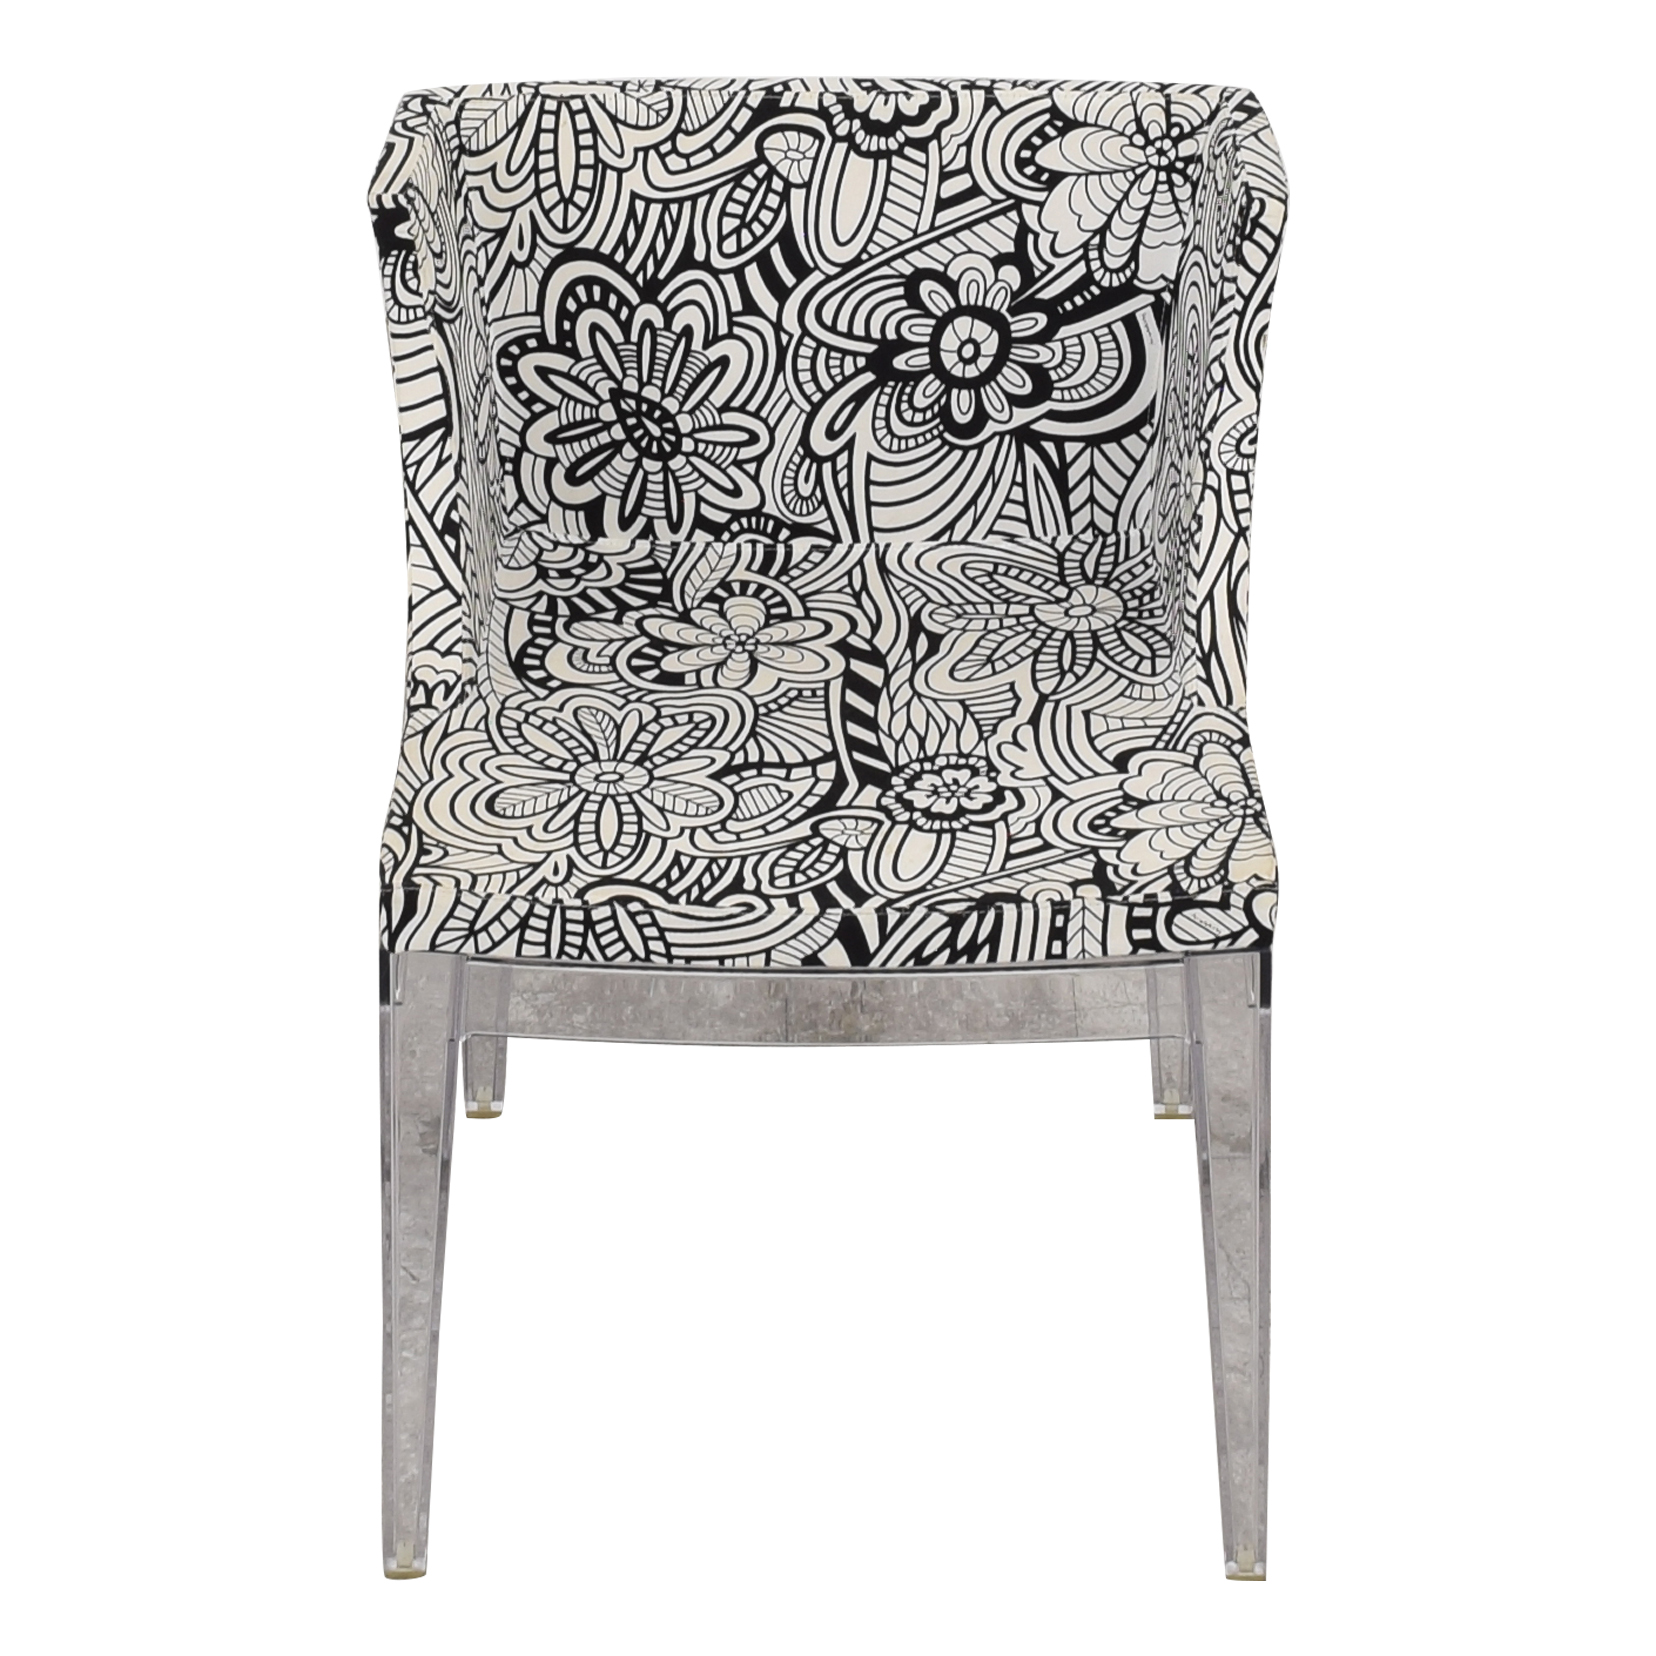 Kartell Kartell Mademoiselle Chair on sale